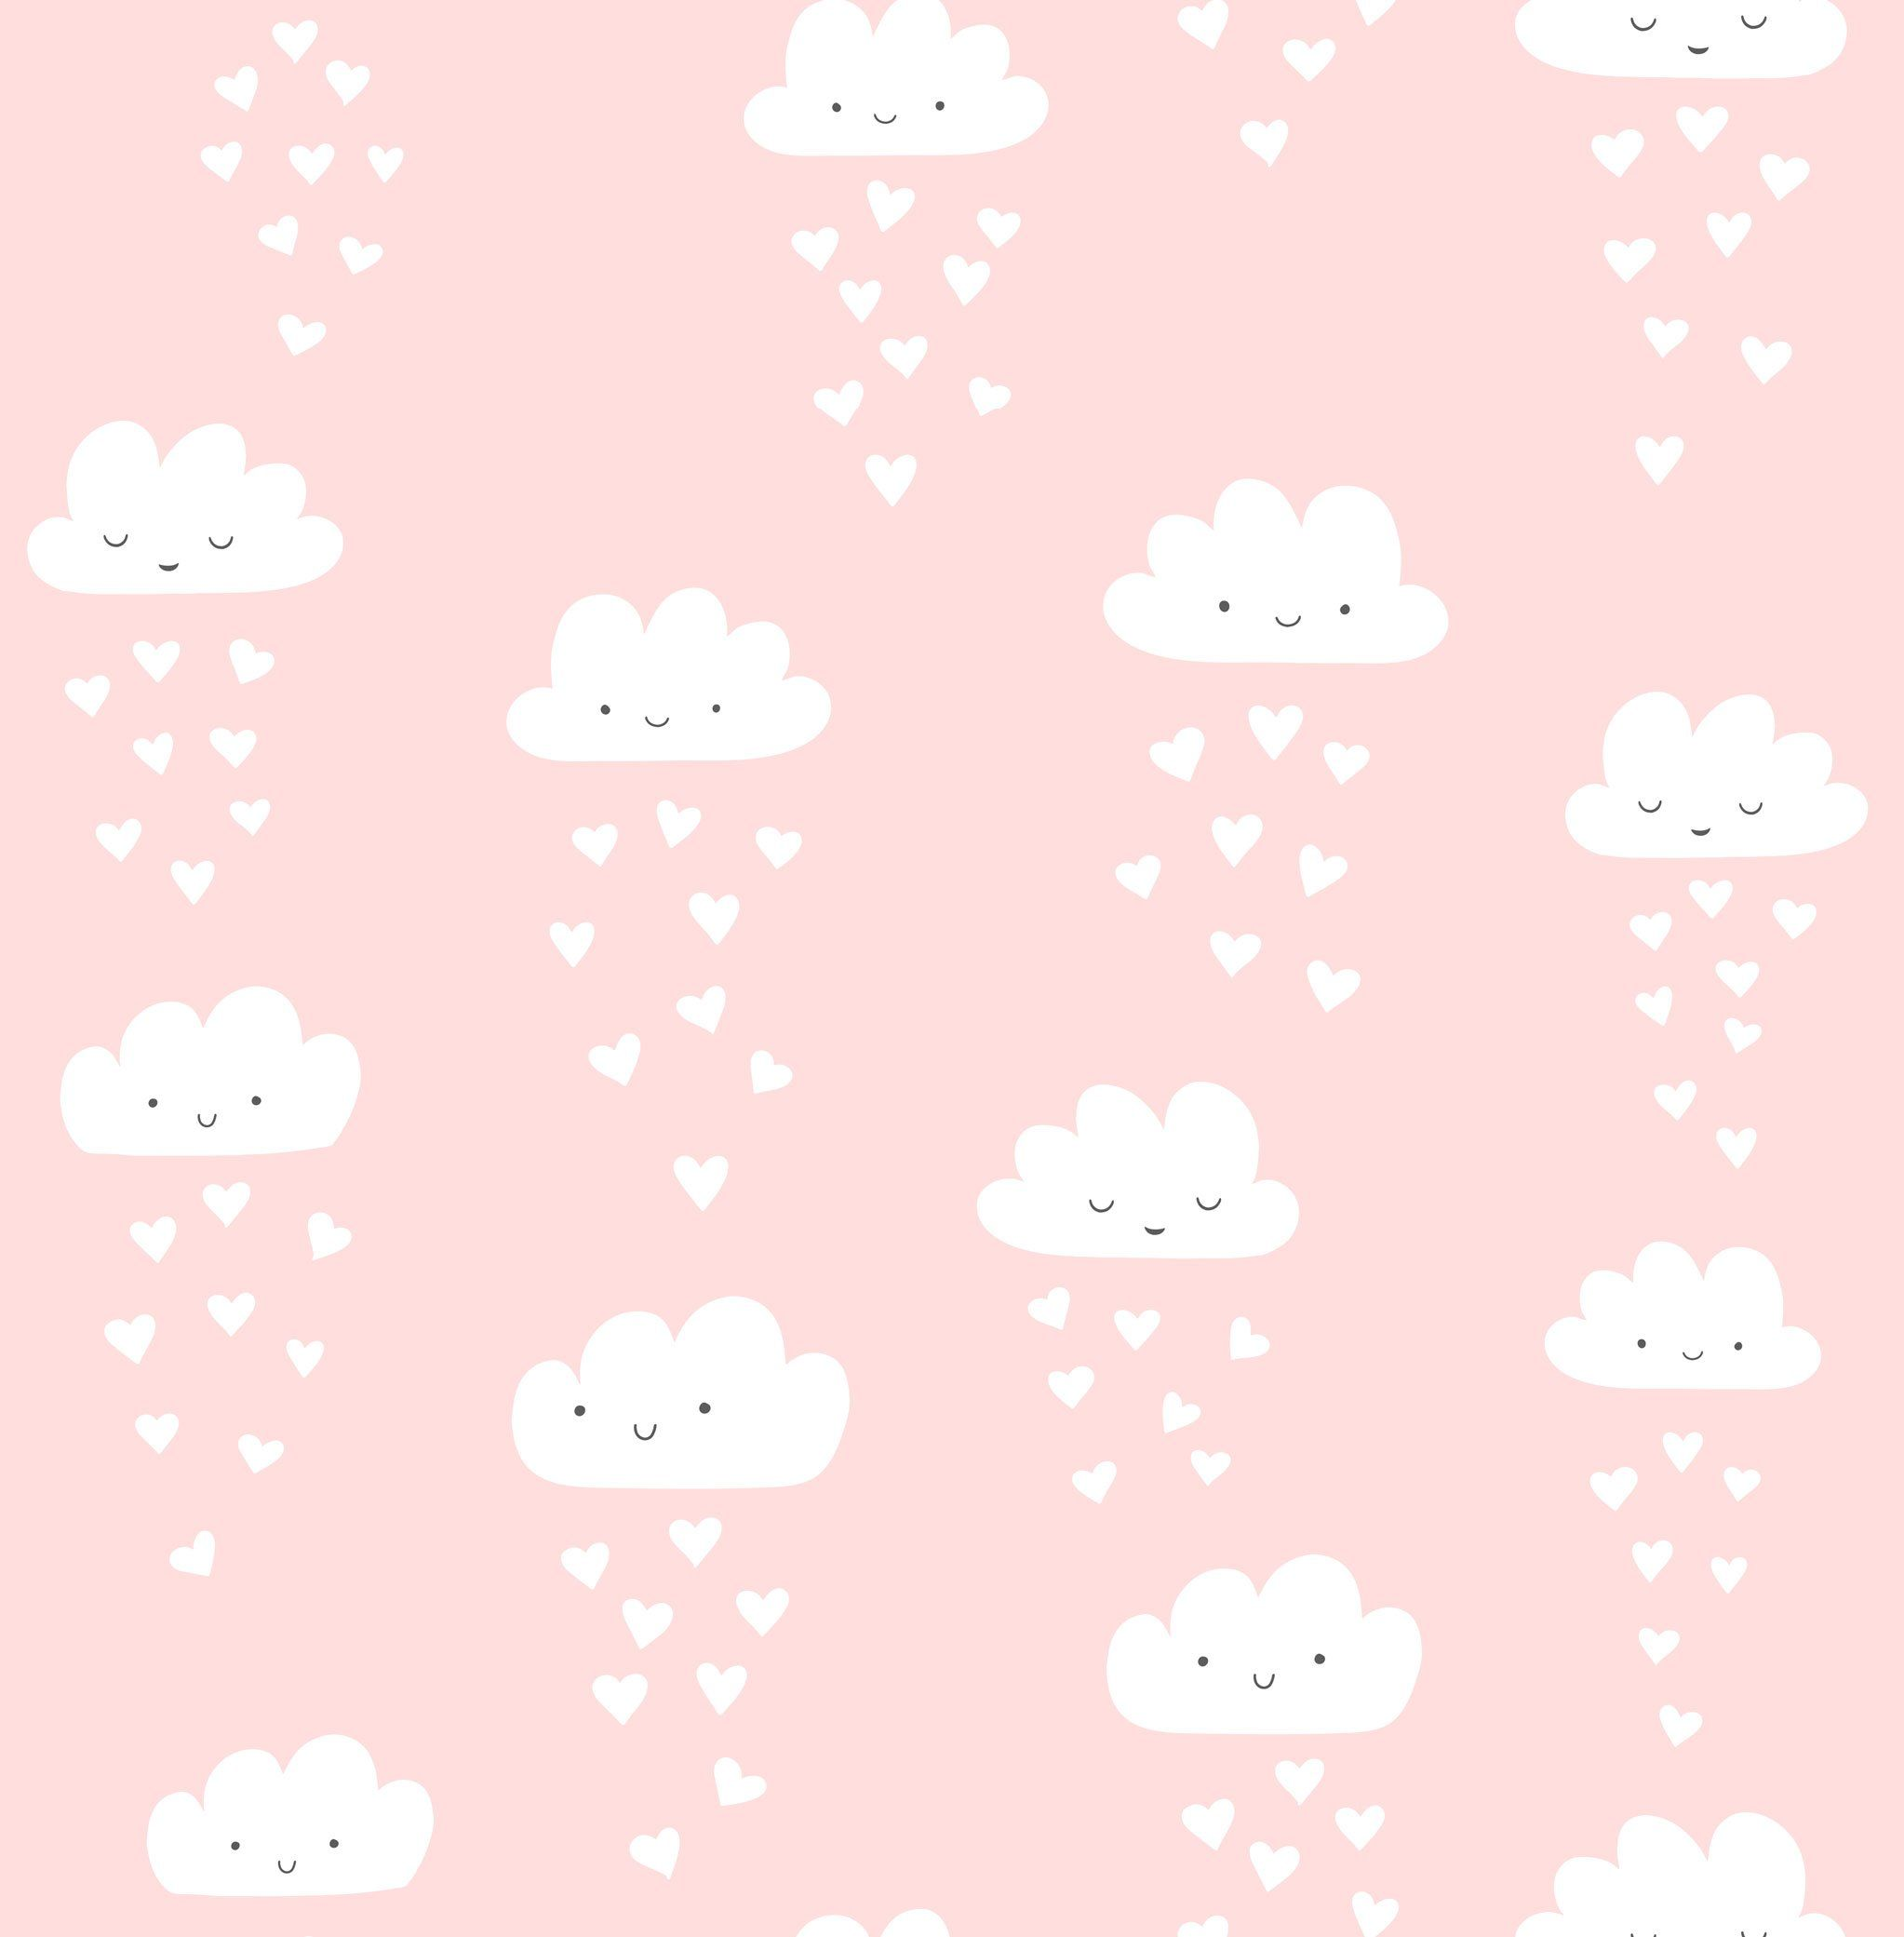 raining hearts wallpapers valentines patterns